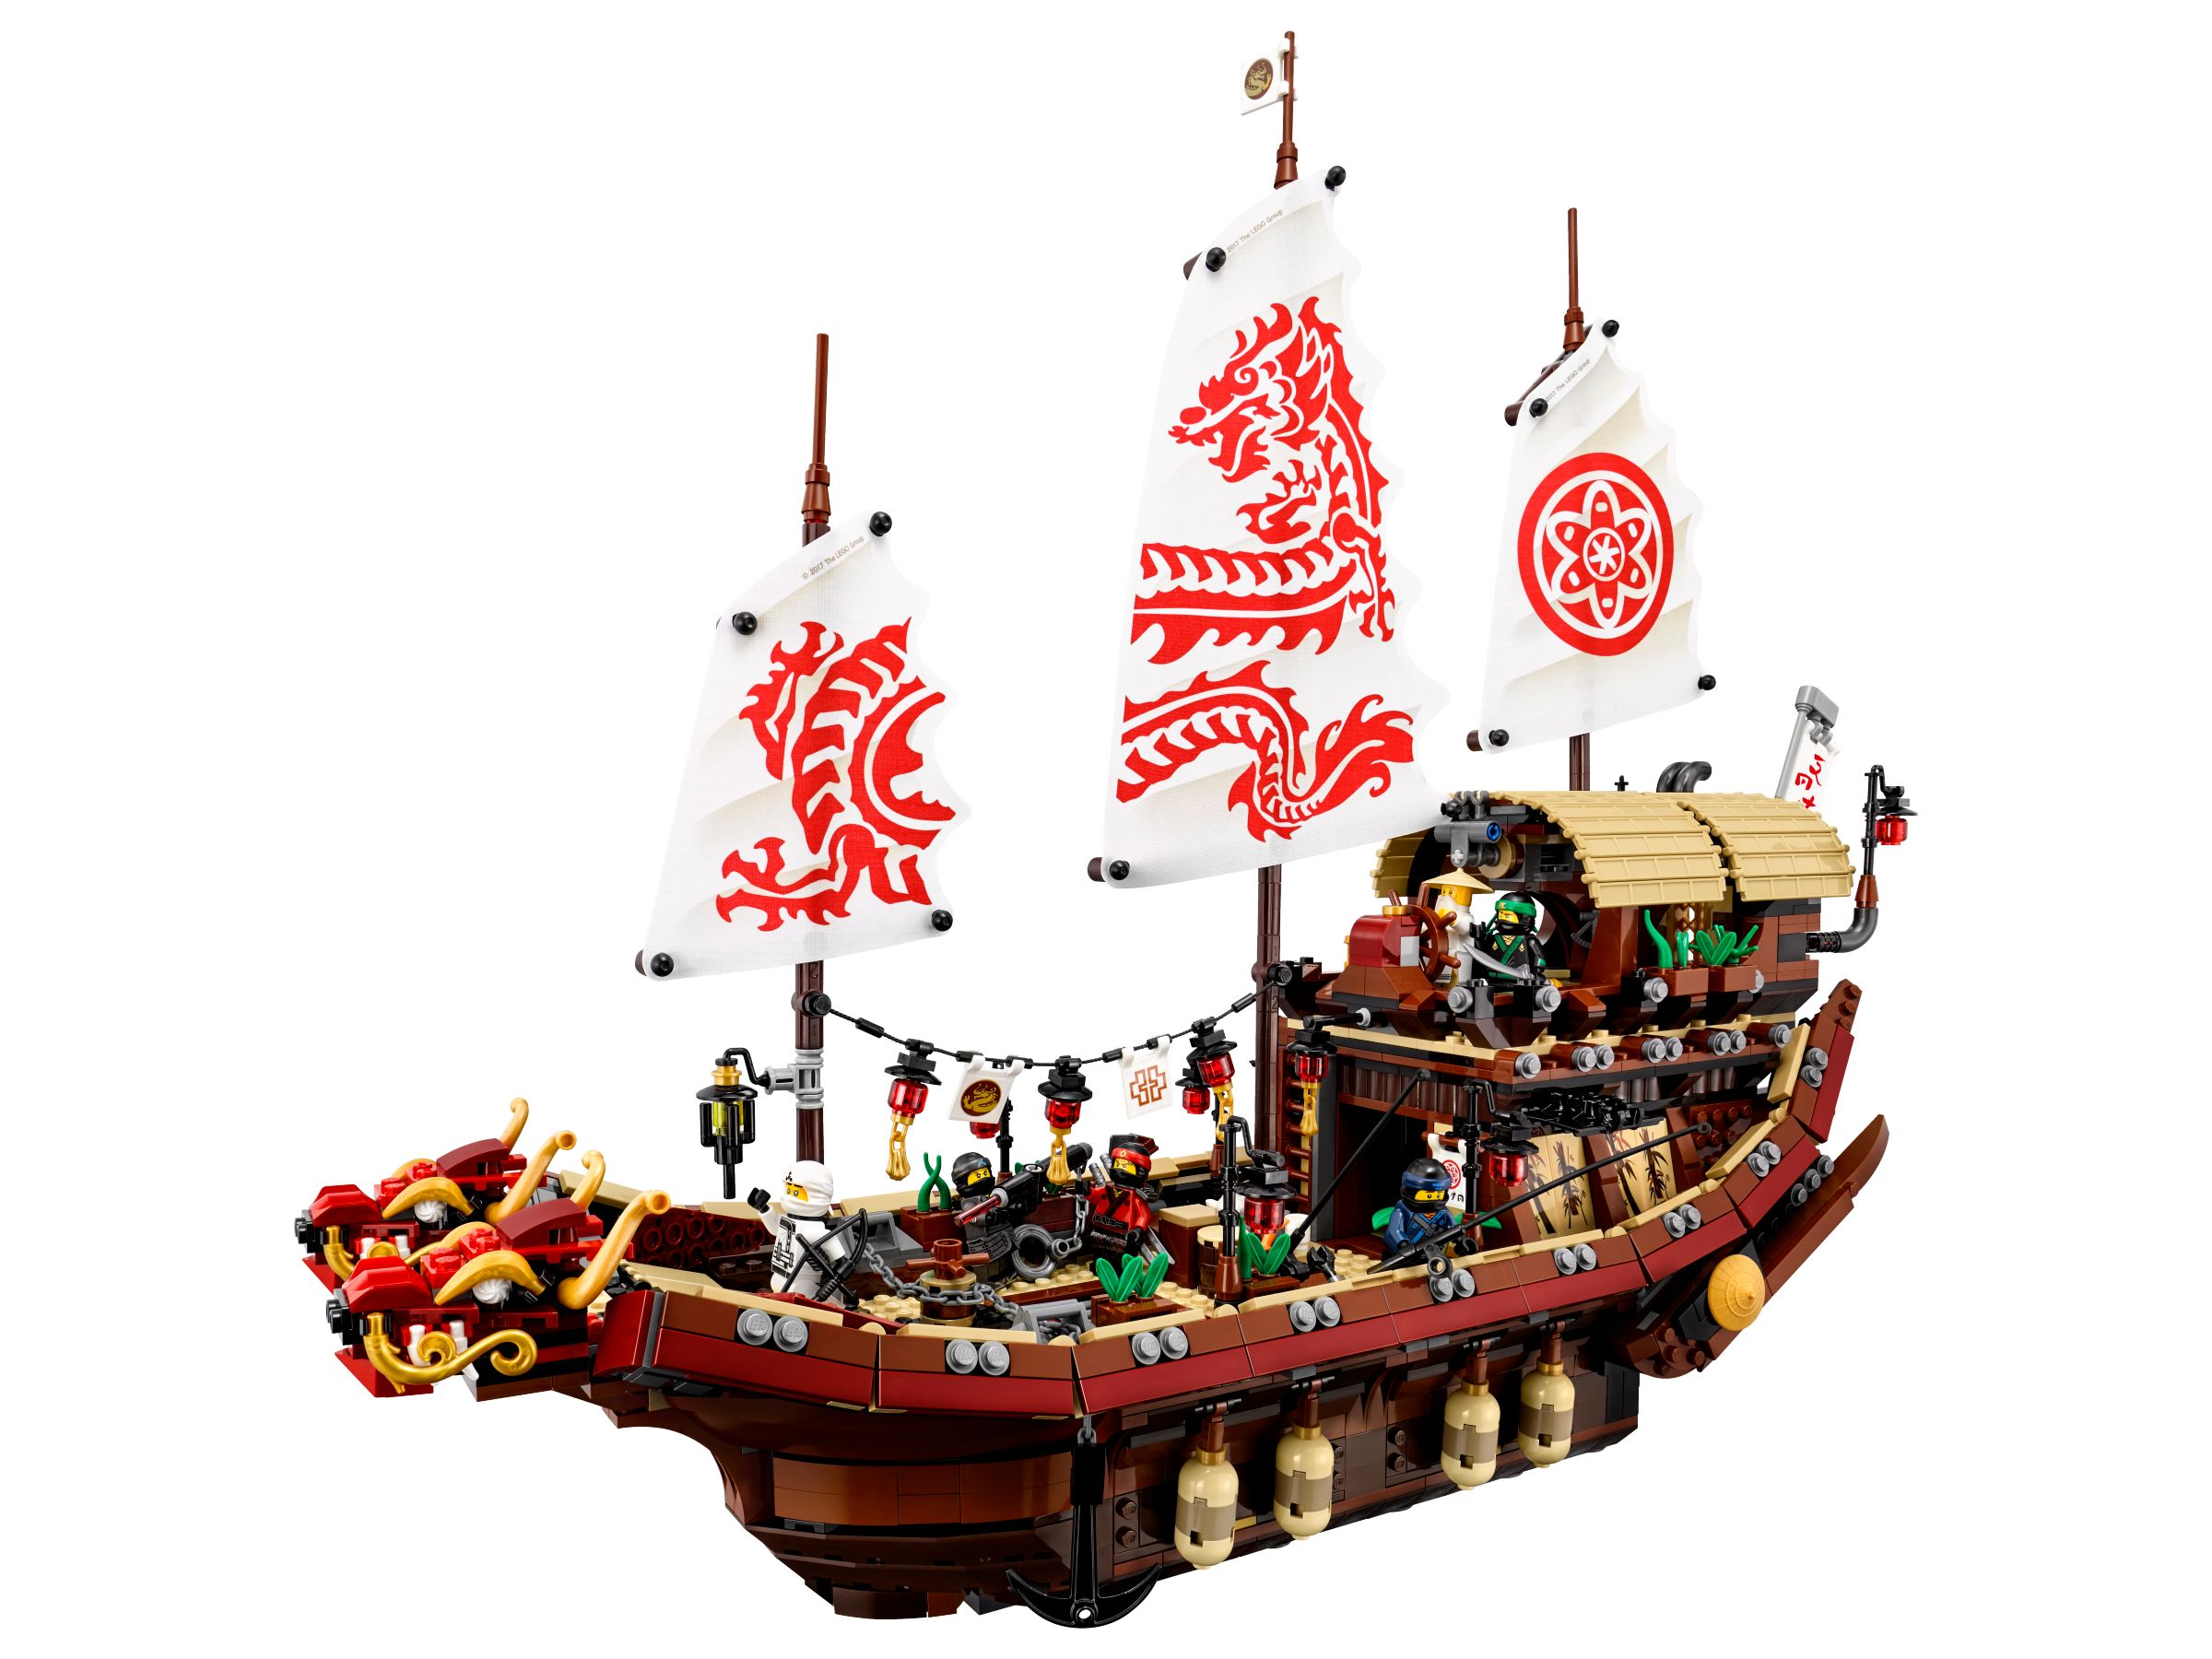 LEGO The LEGO Ninjago Movie 70618 Ninja-Flugsegler LEGO_70618_alt2.jpg